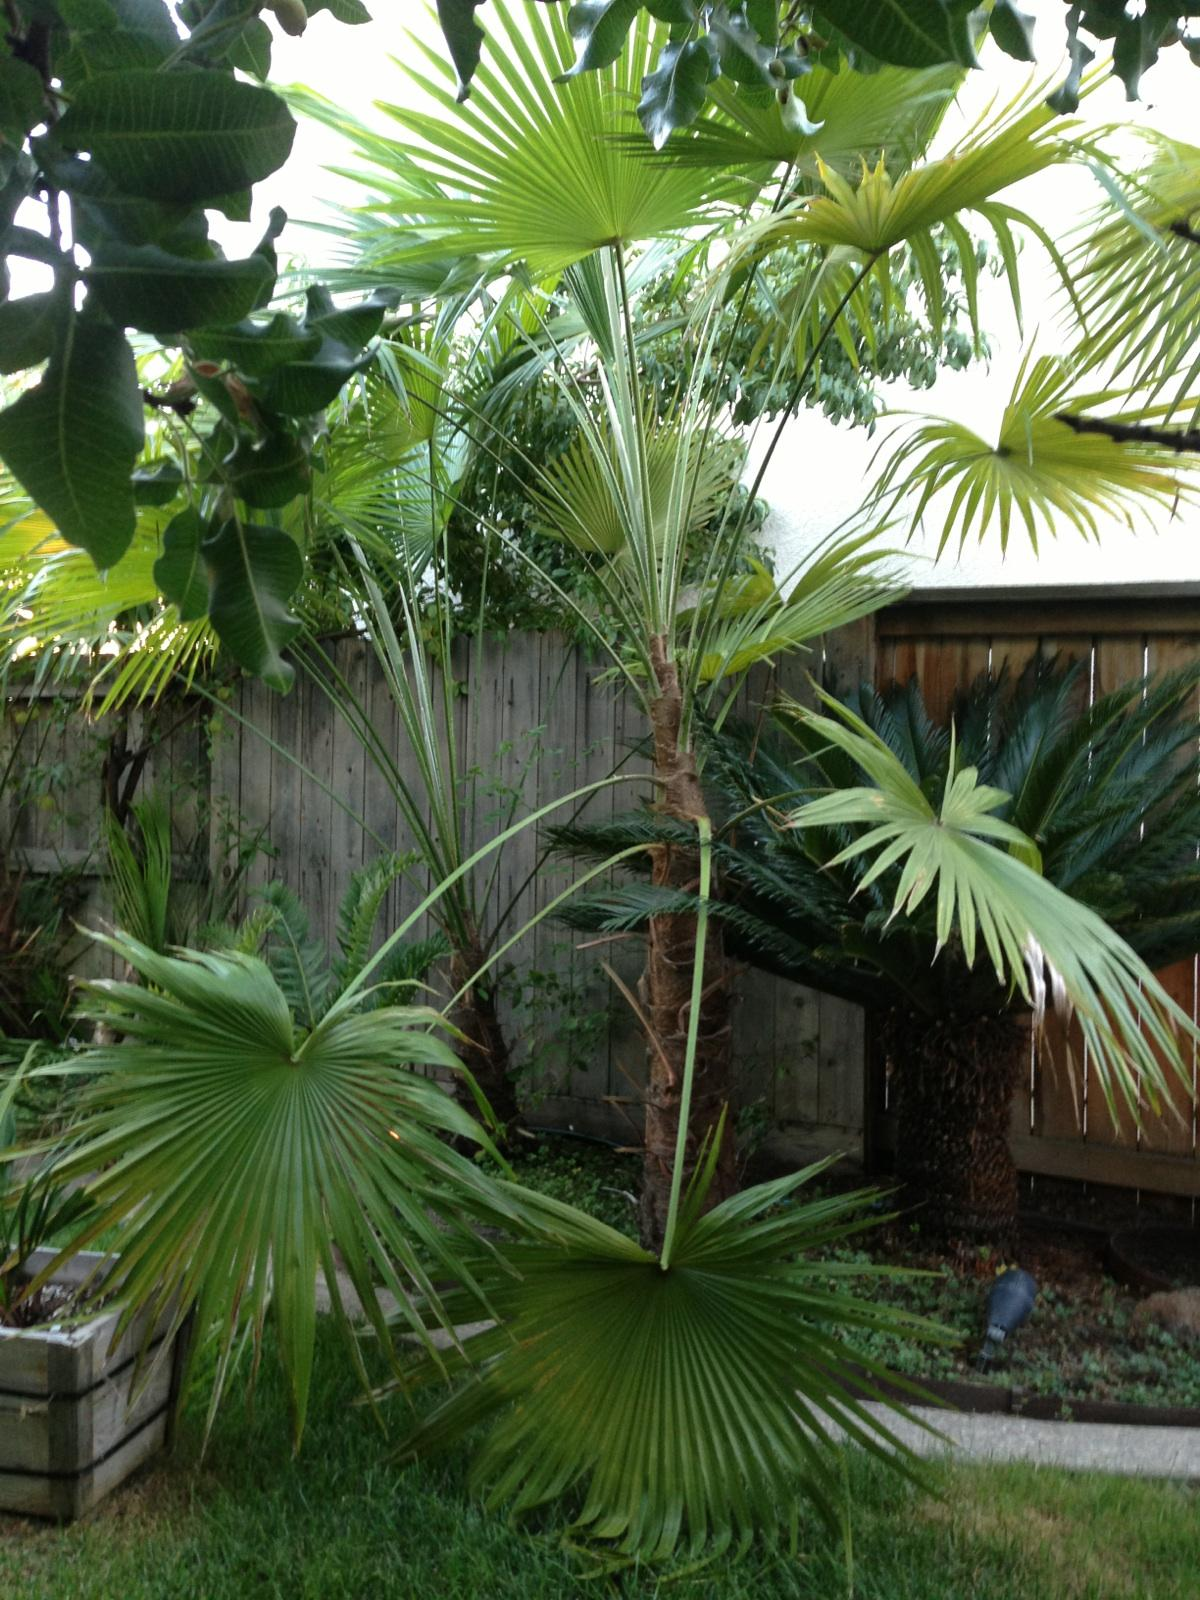 What Will I Look Like When I Grow Up >> Trachycarpus latisectus - DISCUSSING PALM TREES WORLDWIDE - PalmTalk